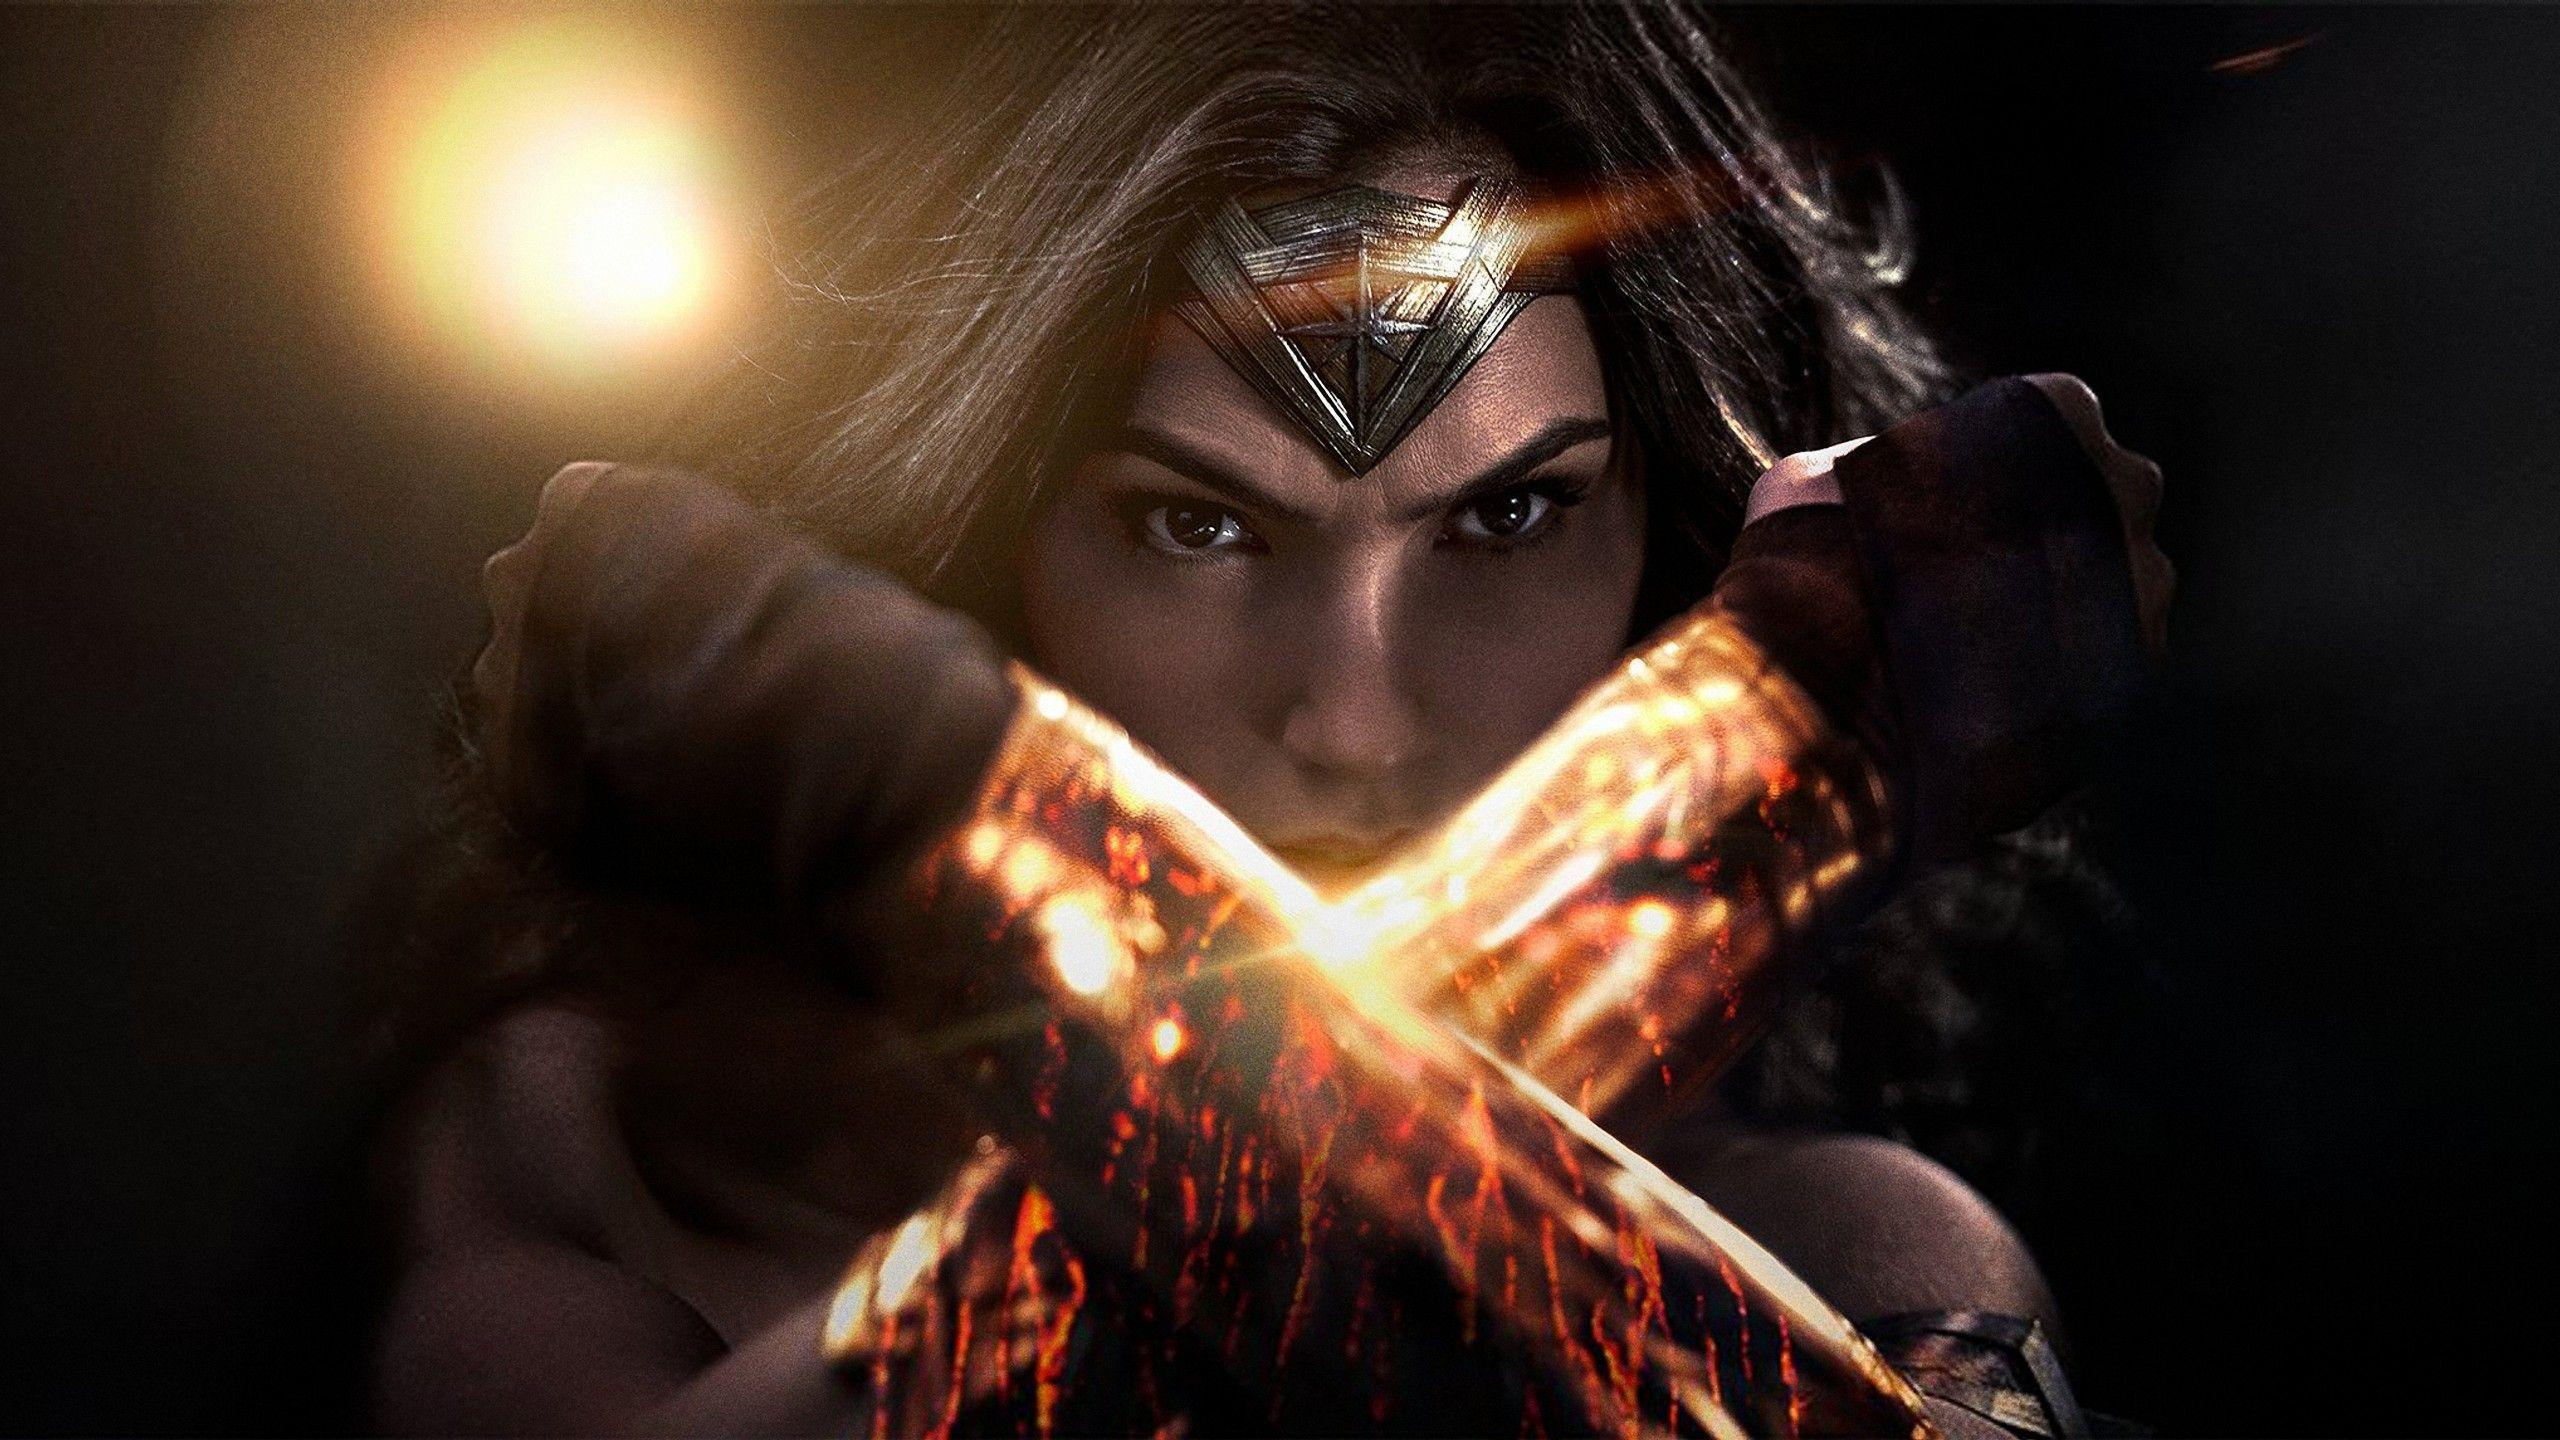 Wallpapers Wonder Woman, Batman v Superman, 5K, Movies